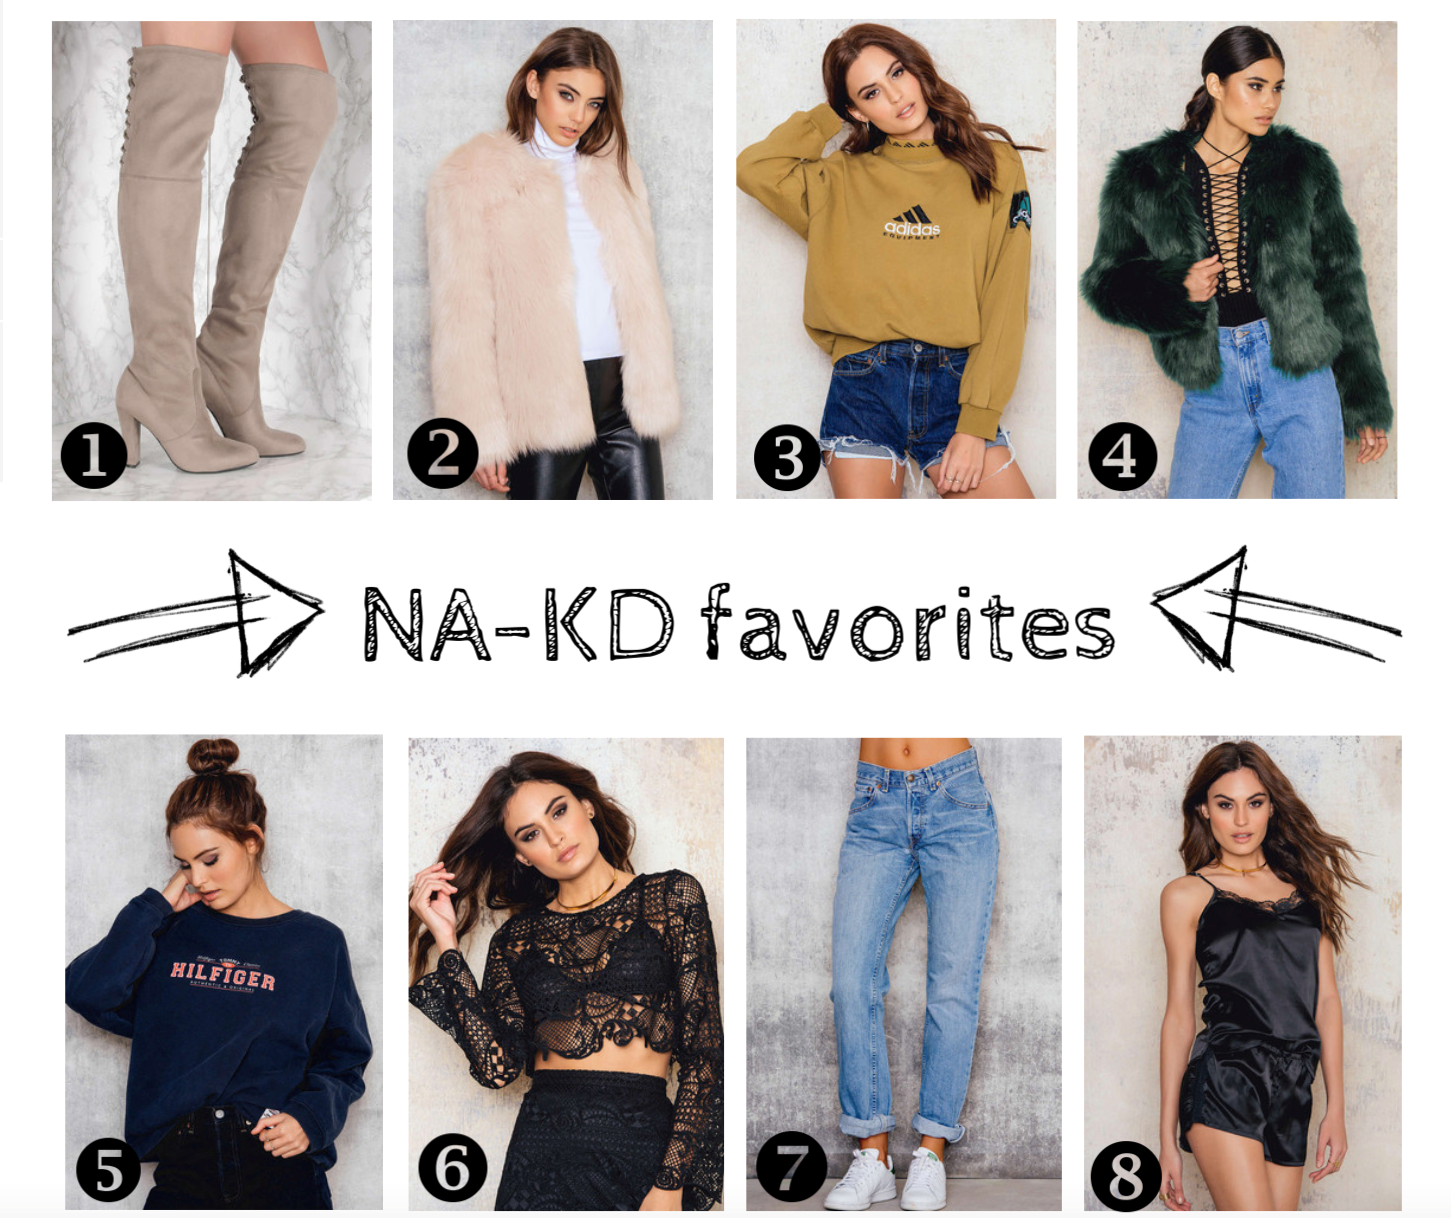 NA-KD FAVORITES / MY DAY